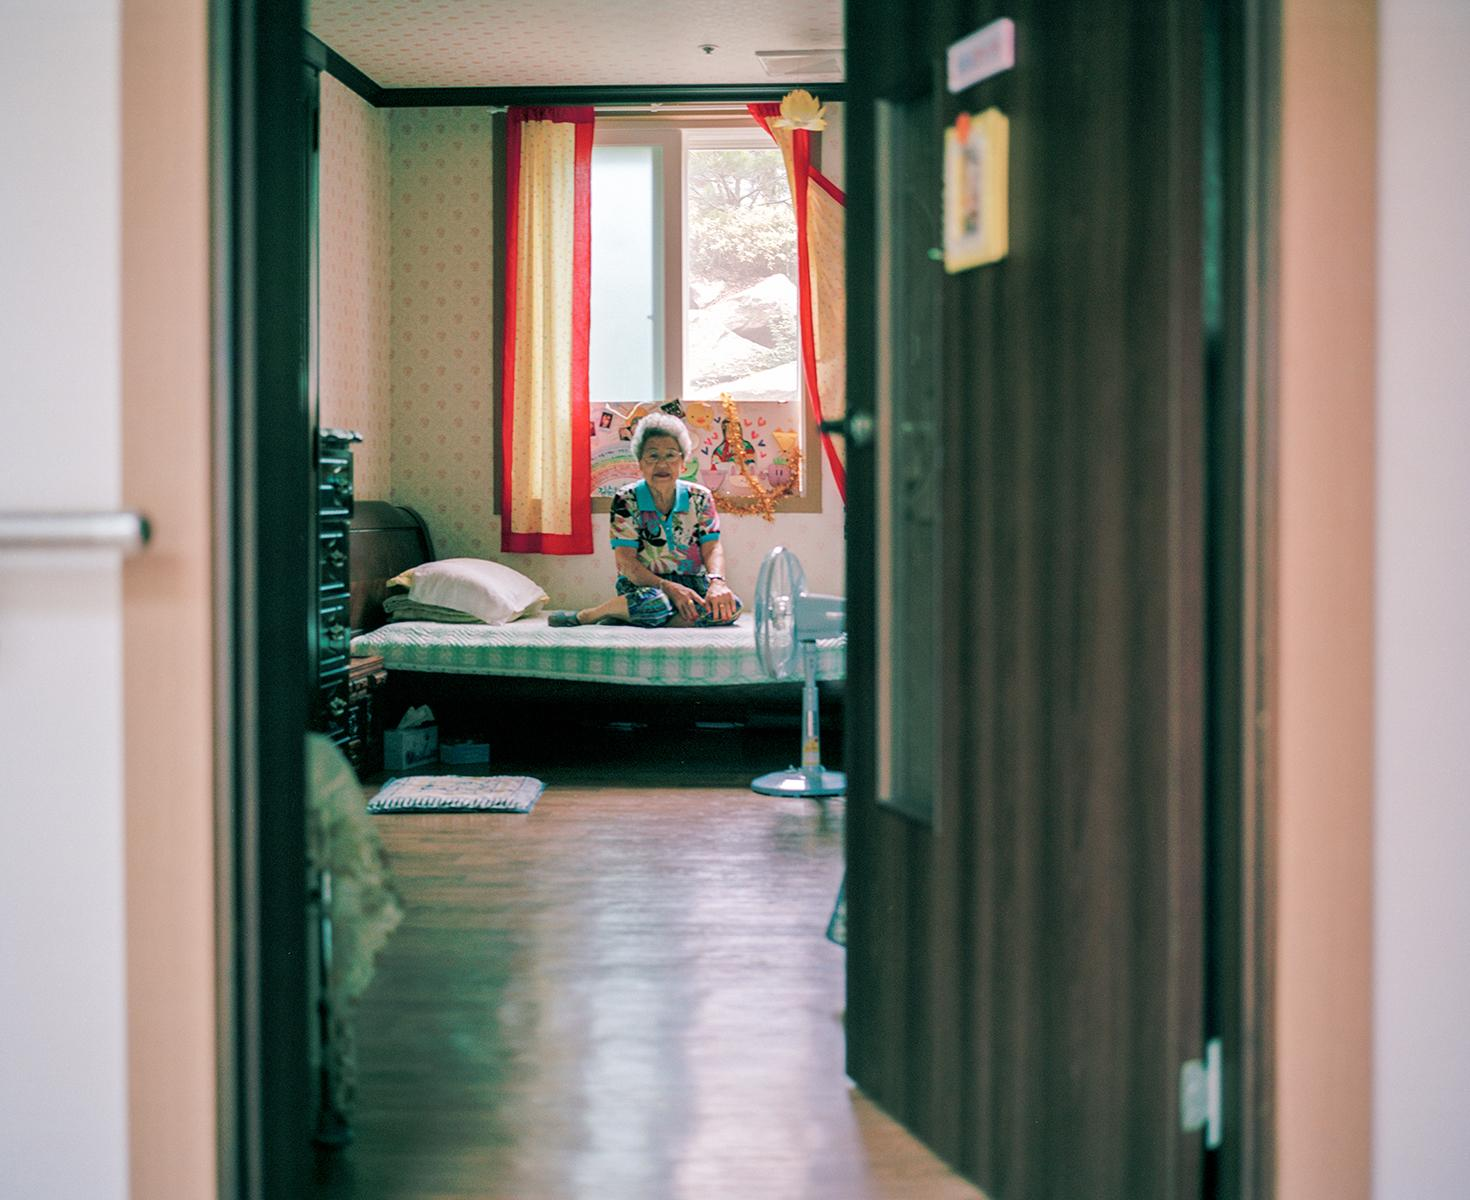 Kim Soon Ok Halmoni in her room, House of Sharing, Gwangju, South Korea, 2010